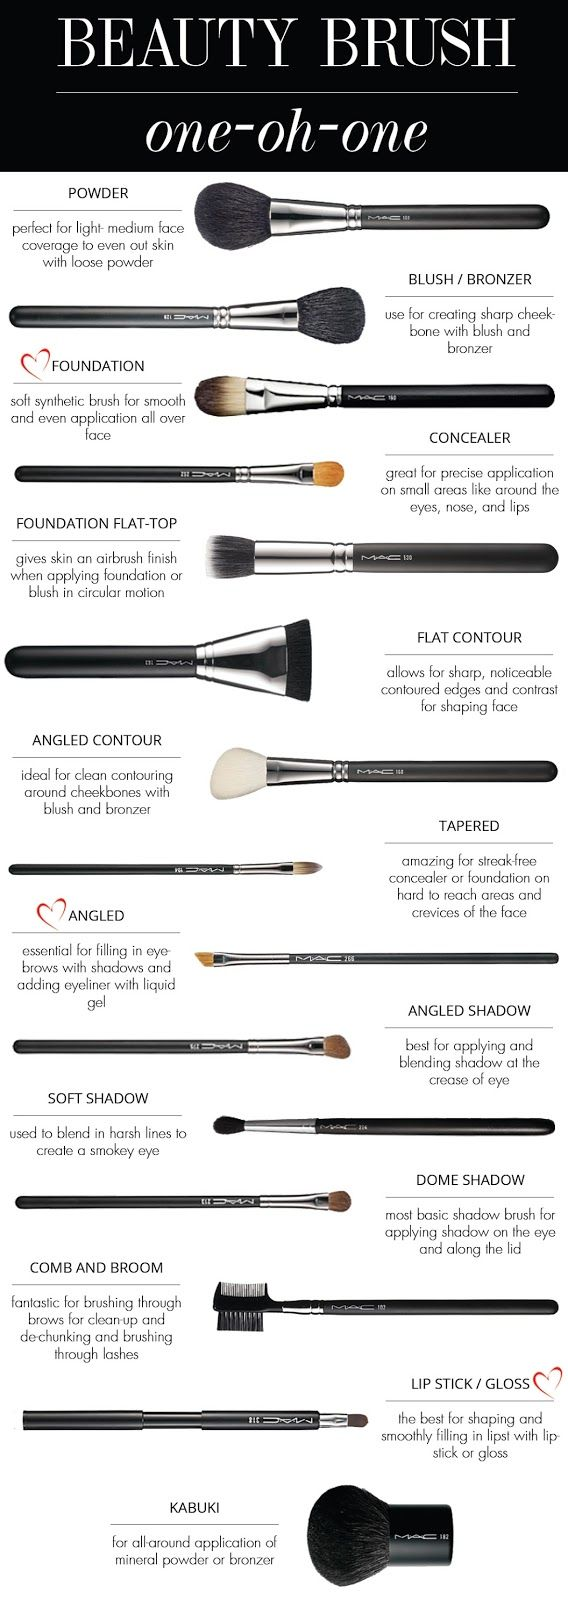 eyeshadow brushes explained. by alexis noelle keeps readers updated with the latest fashion news, trends, advice and popular products. girly stuff, makeup brushes eyeshadow explained